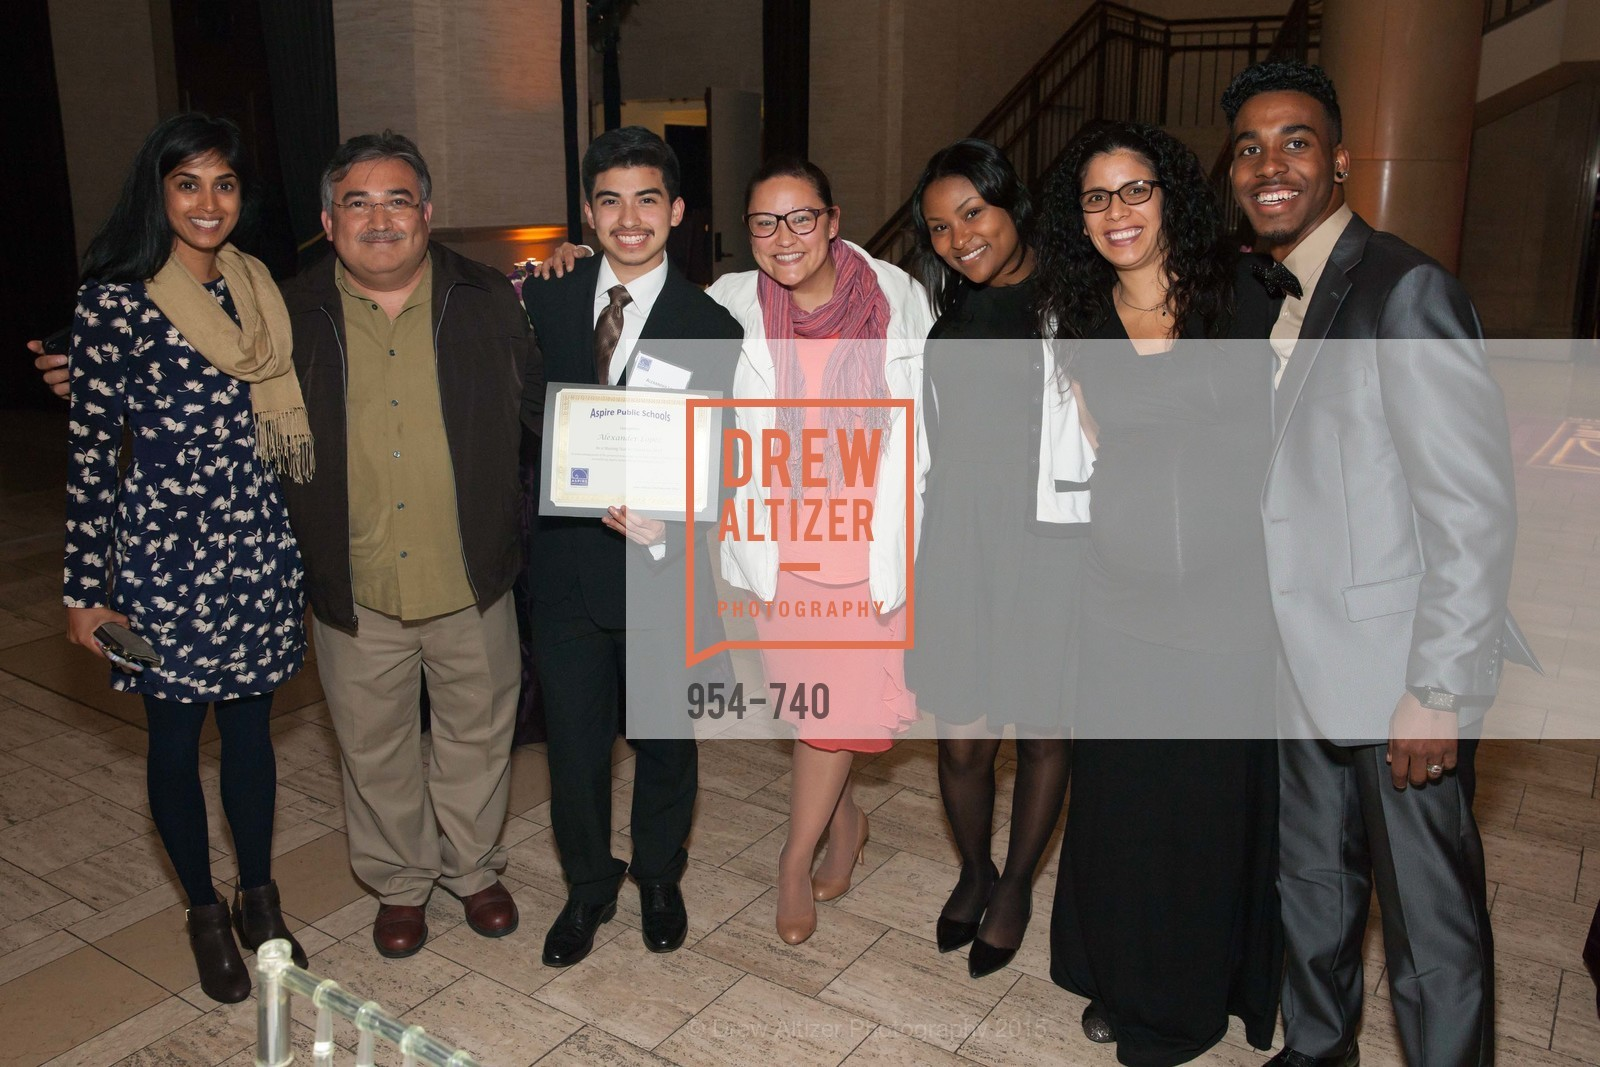 Minnie Setty, Alexander Lopez, Tatiana Lim, Arlena Ford, Sarah Salazar, Xavier Taylor, Aspire Annual College for Certain Dinne, US, May 21st, 2015,Drew Altizer, Drew Altizer Photography, full-service event agency, private events, San Francisco photographer, photographer California